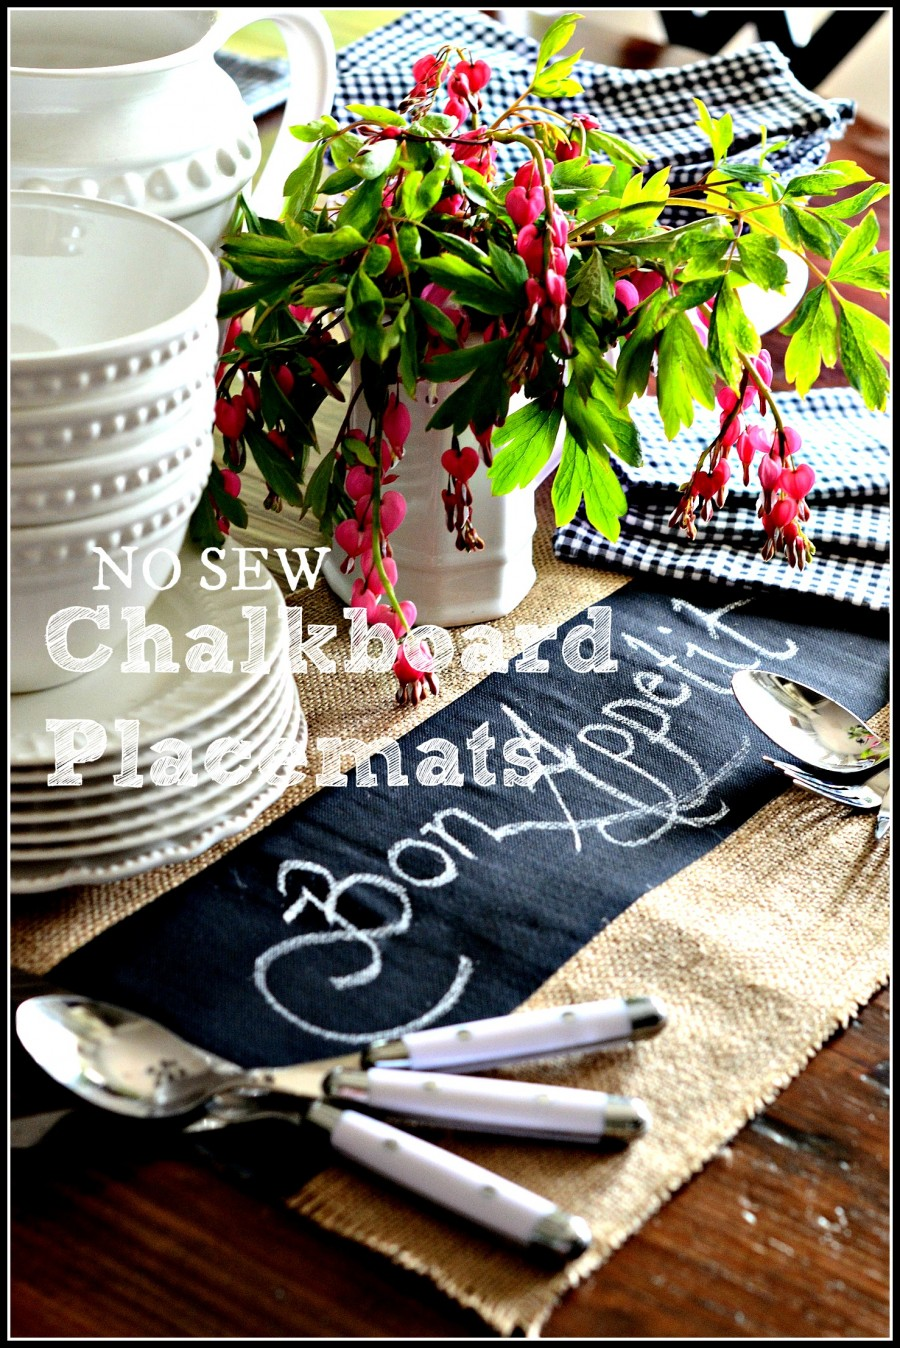 NO SEW CHALKBOARD PLACEMATS